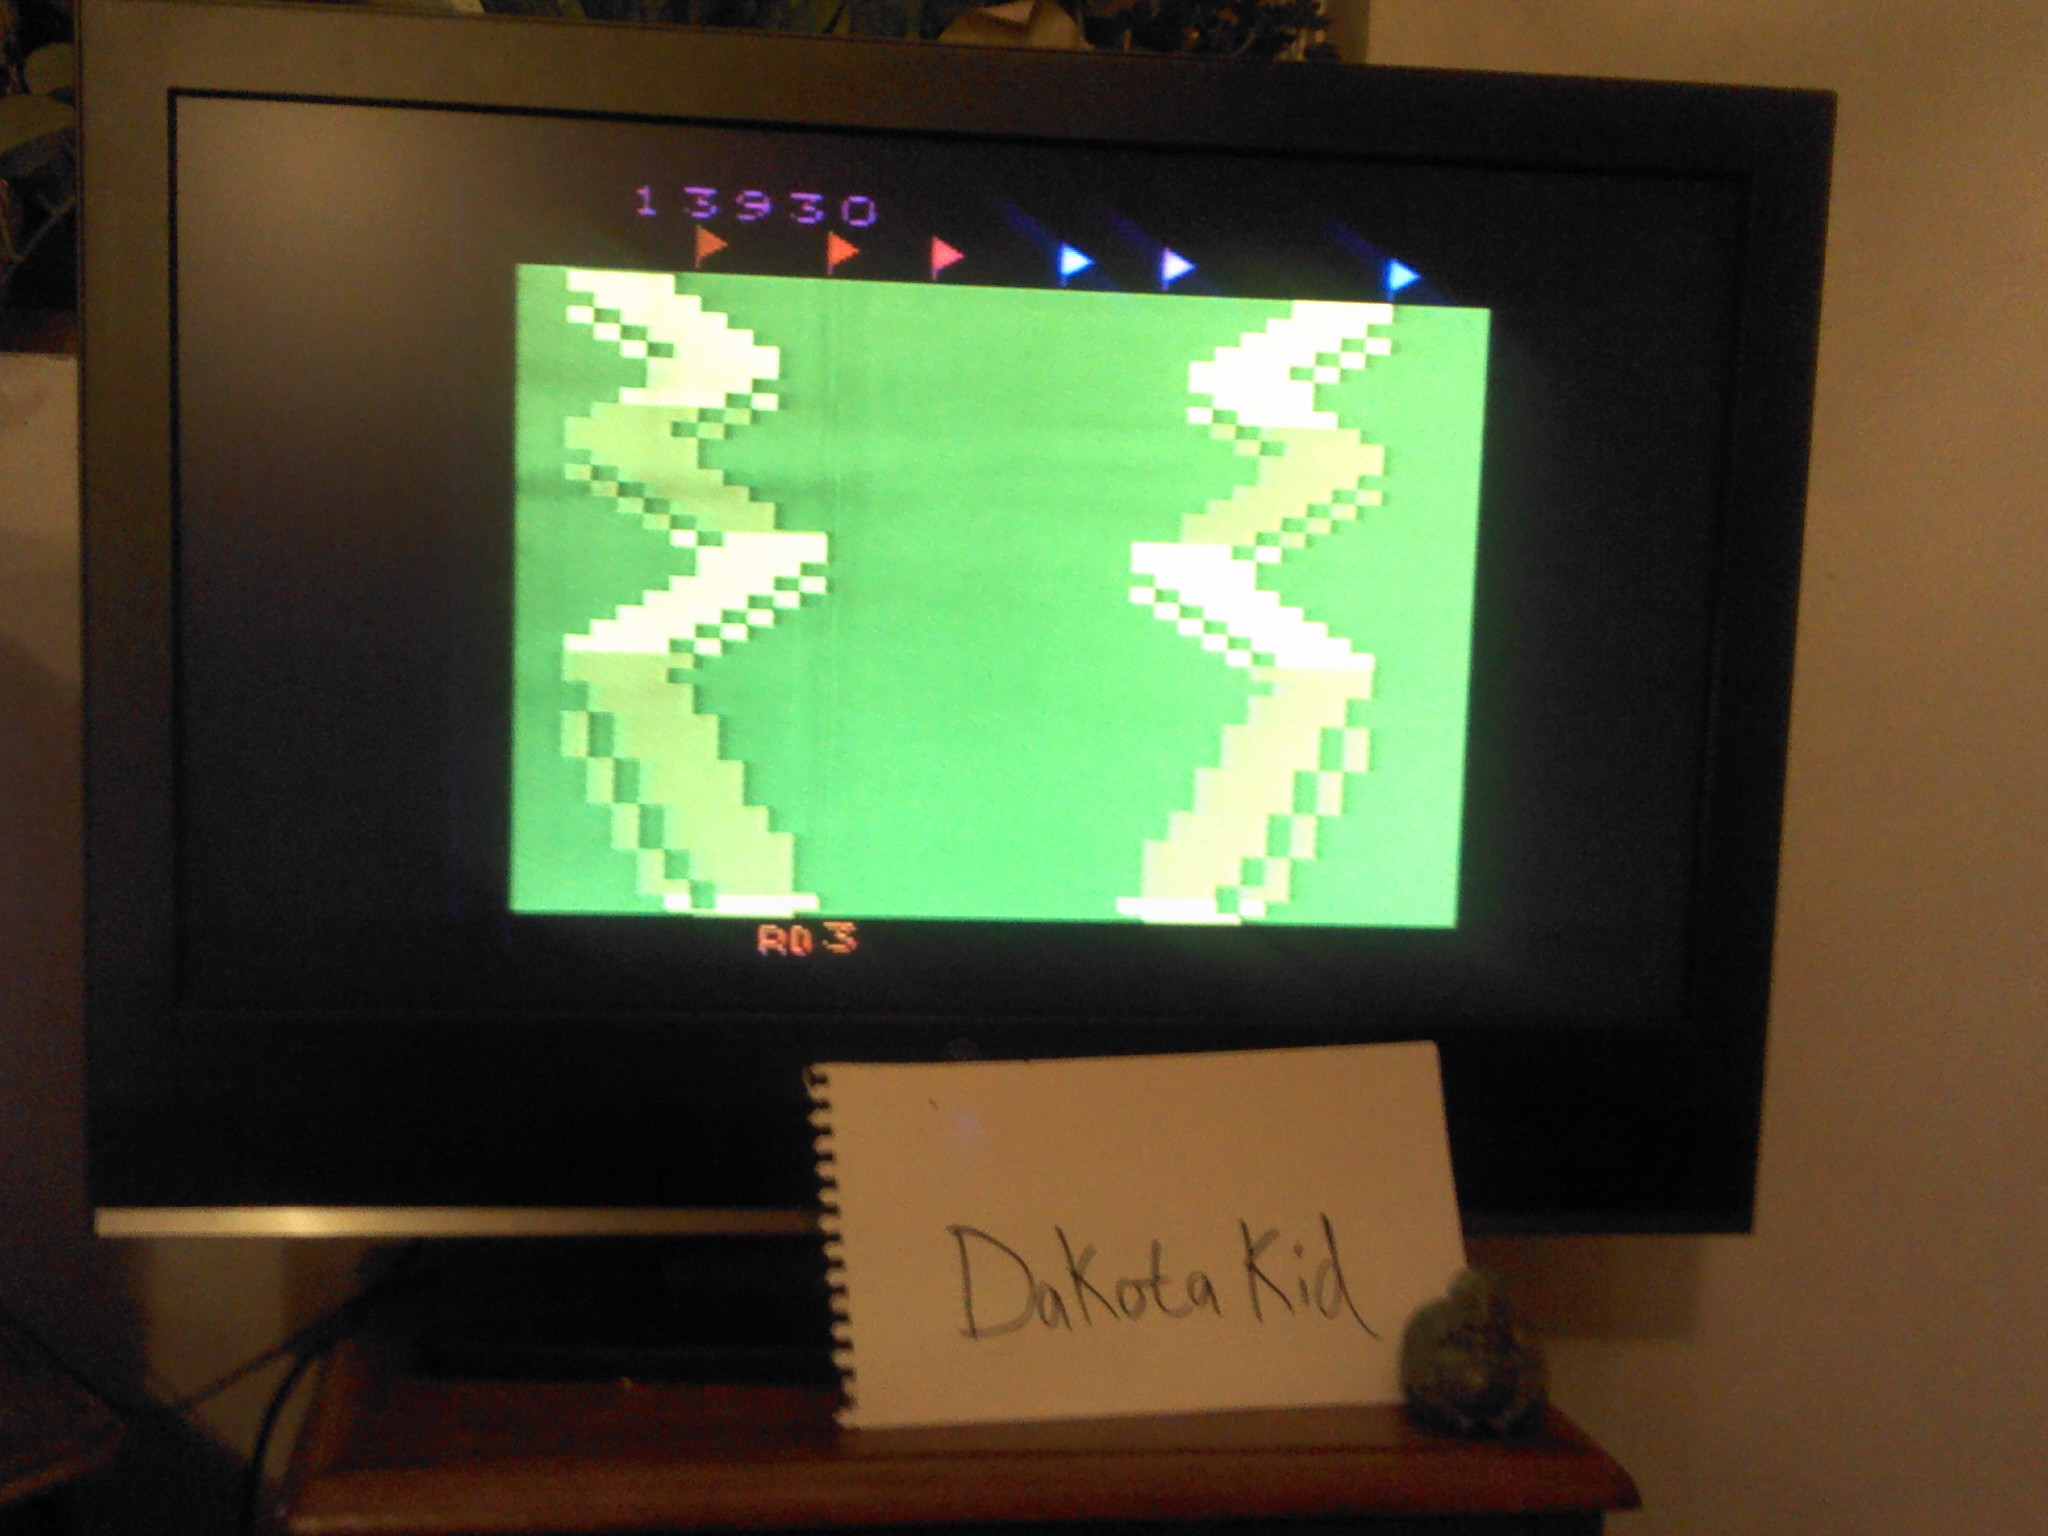 DakotaKid: Up N Down (Atari 2600 Novice/B) 13,930 points on 2014-04-09 23:36:09